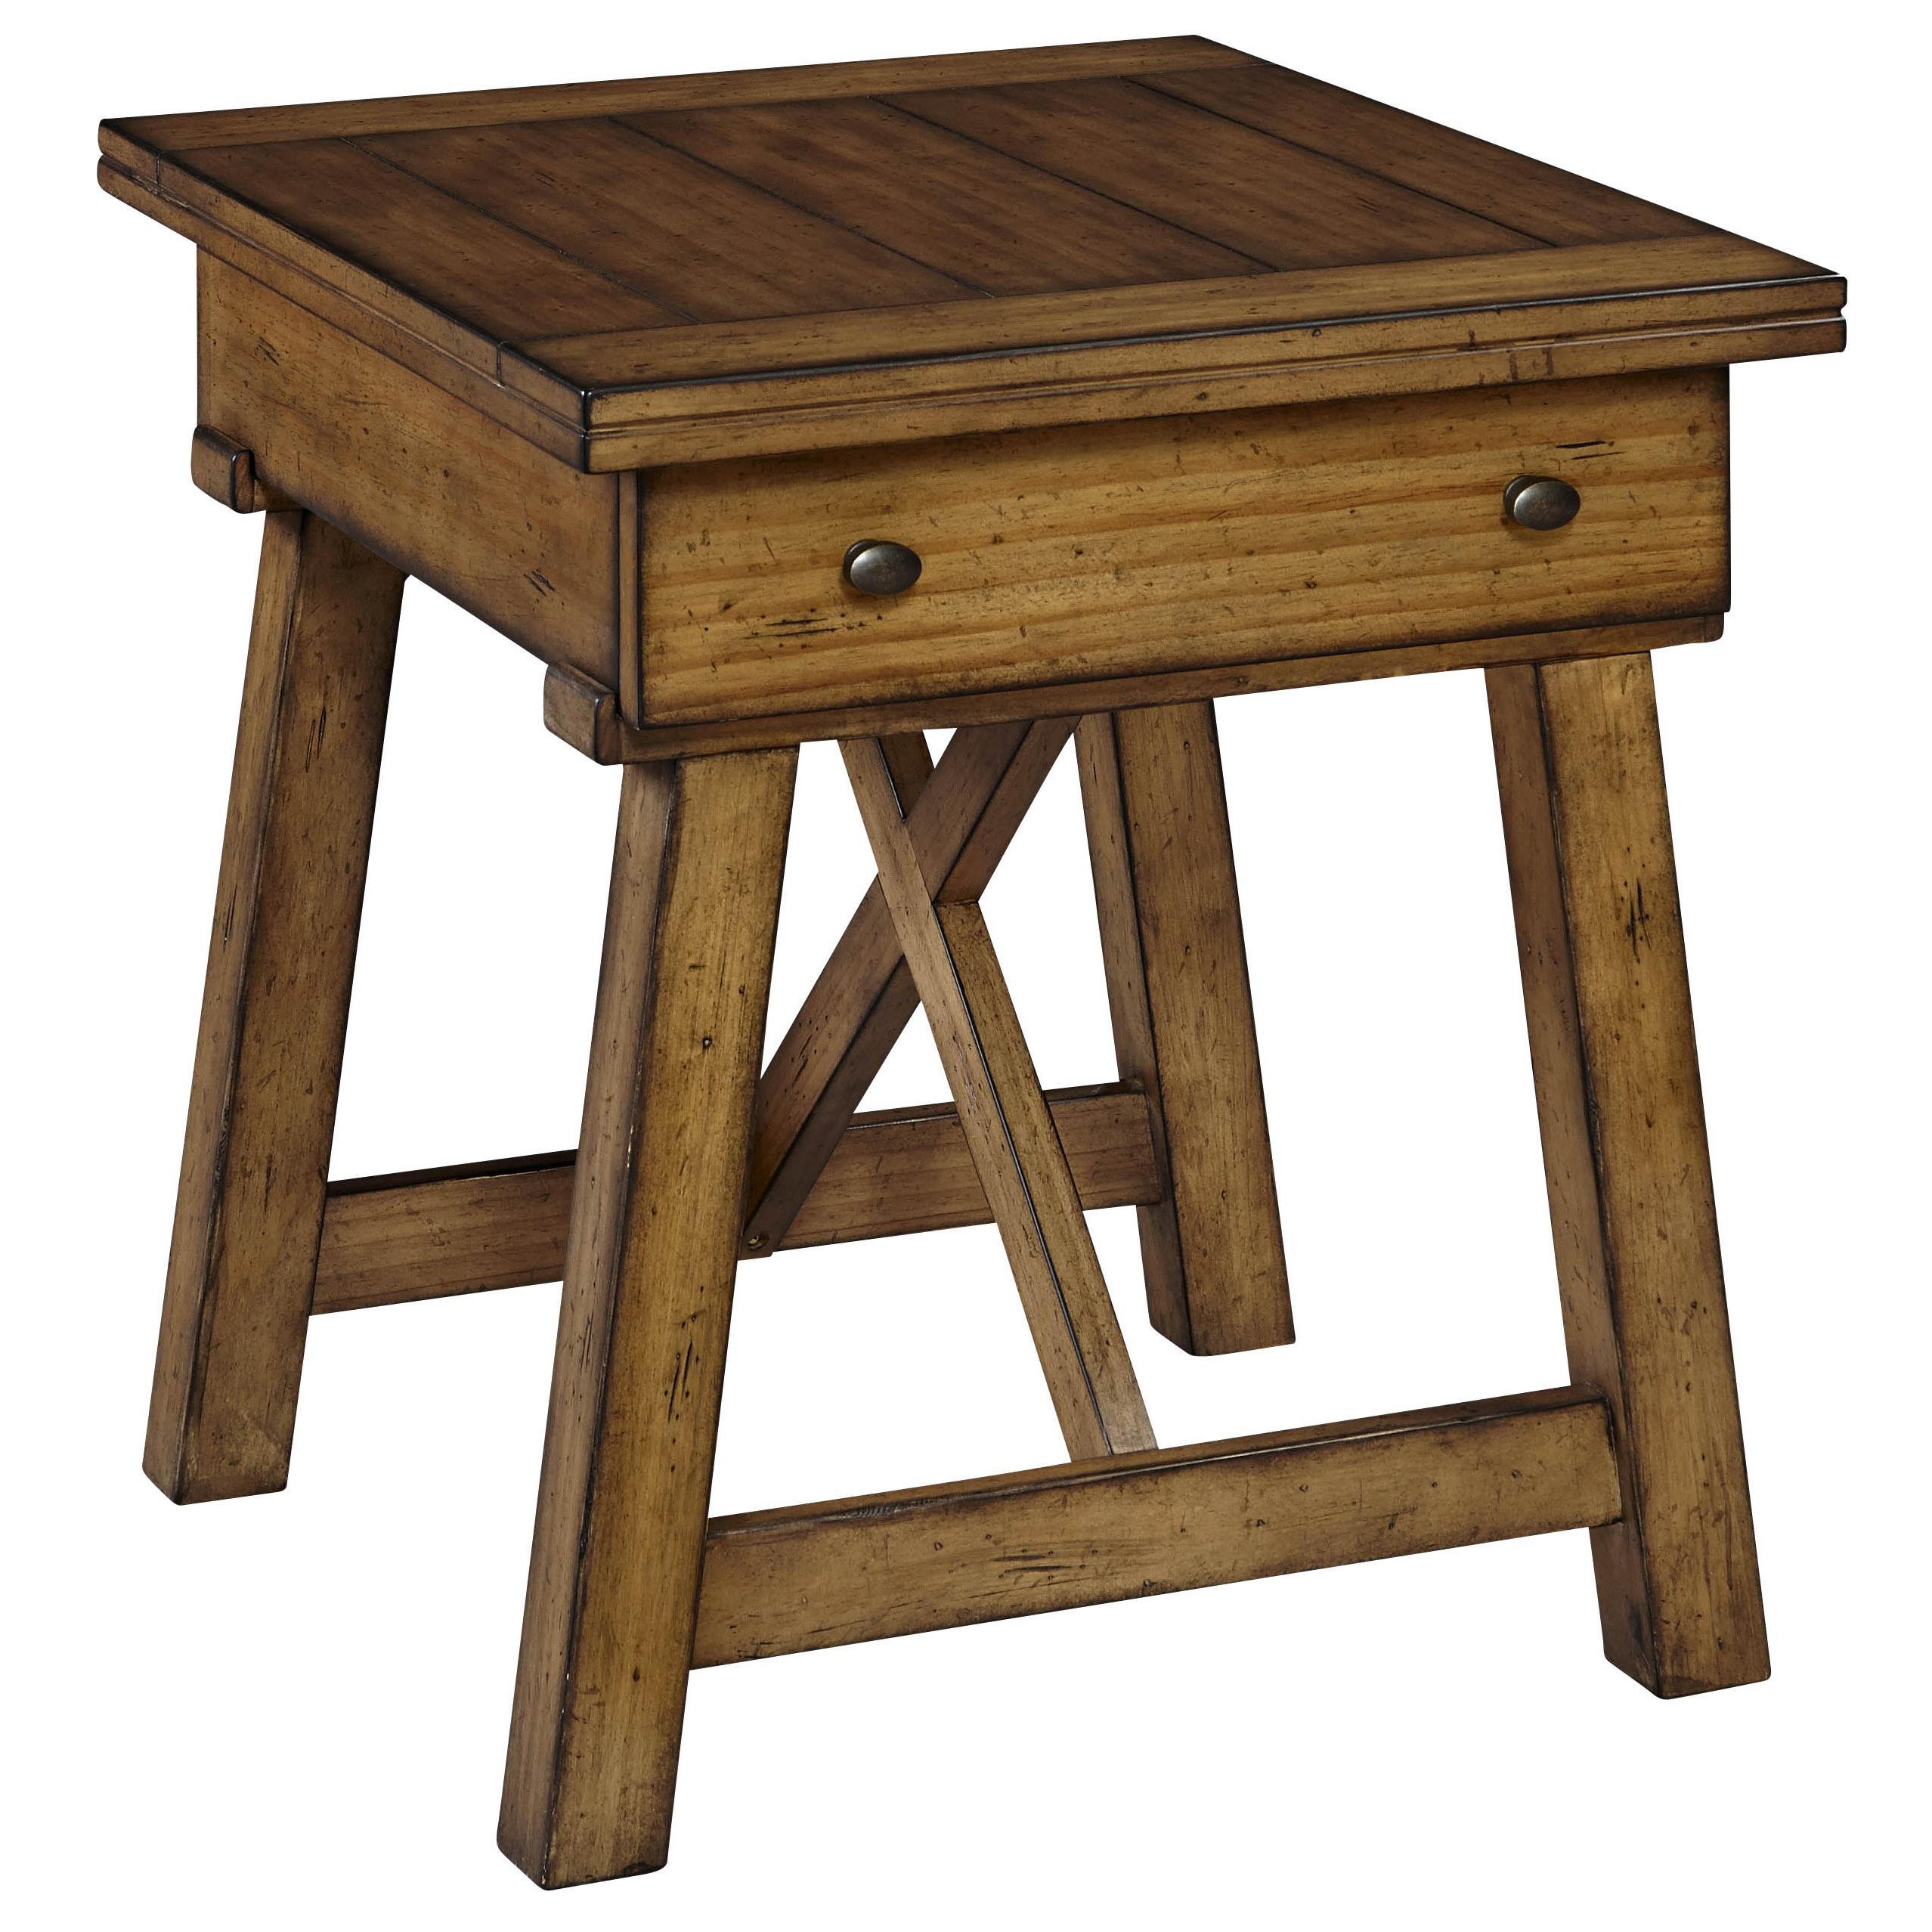 Broyhill Furniture Bethany Square Drawer End Table - Item Number: 4930-002